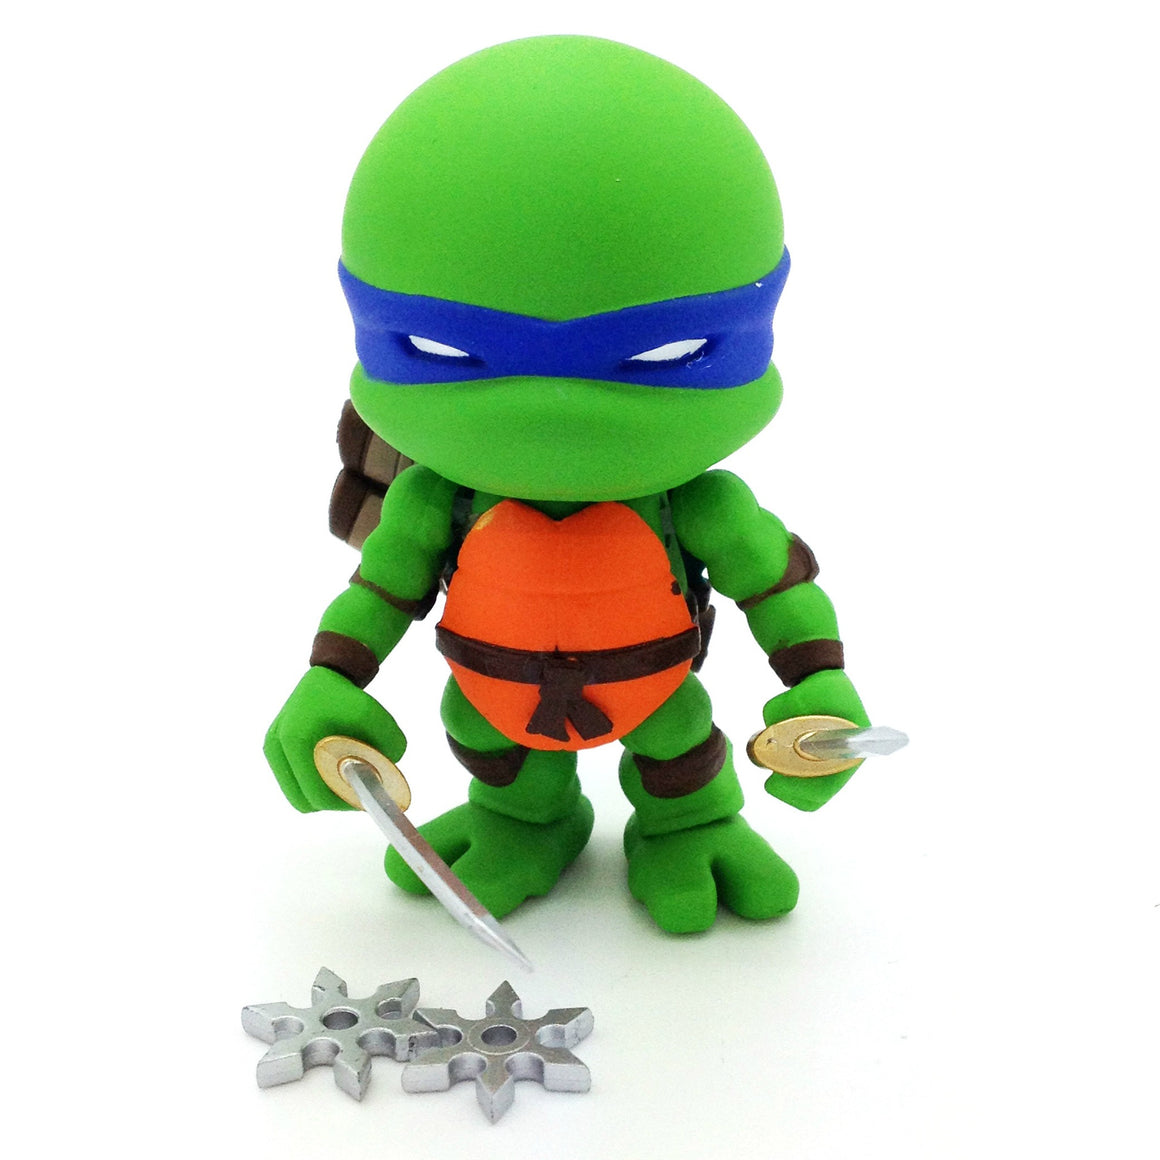 TMNT x Loyal Subjects Teenage Mutant Ninja Turtles Action Vinyls - Set of 4 - Mindzai  - 1